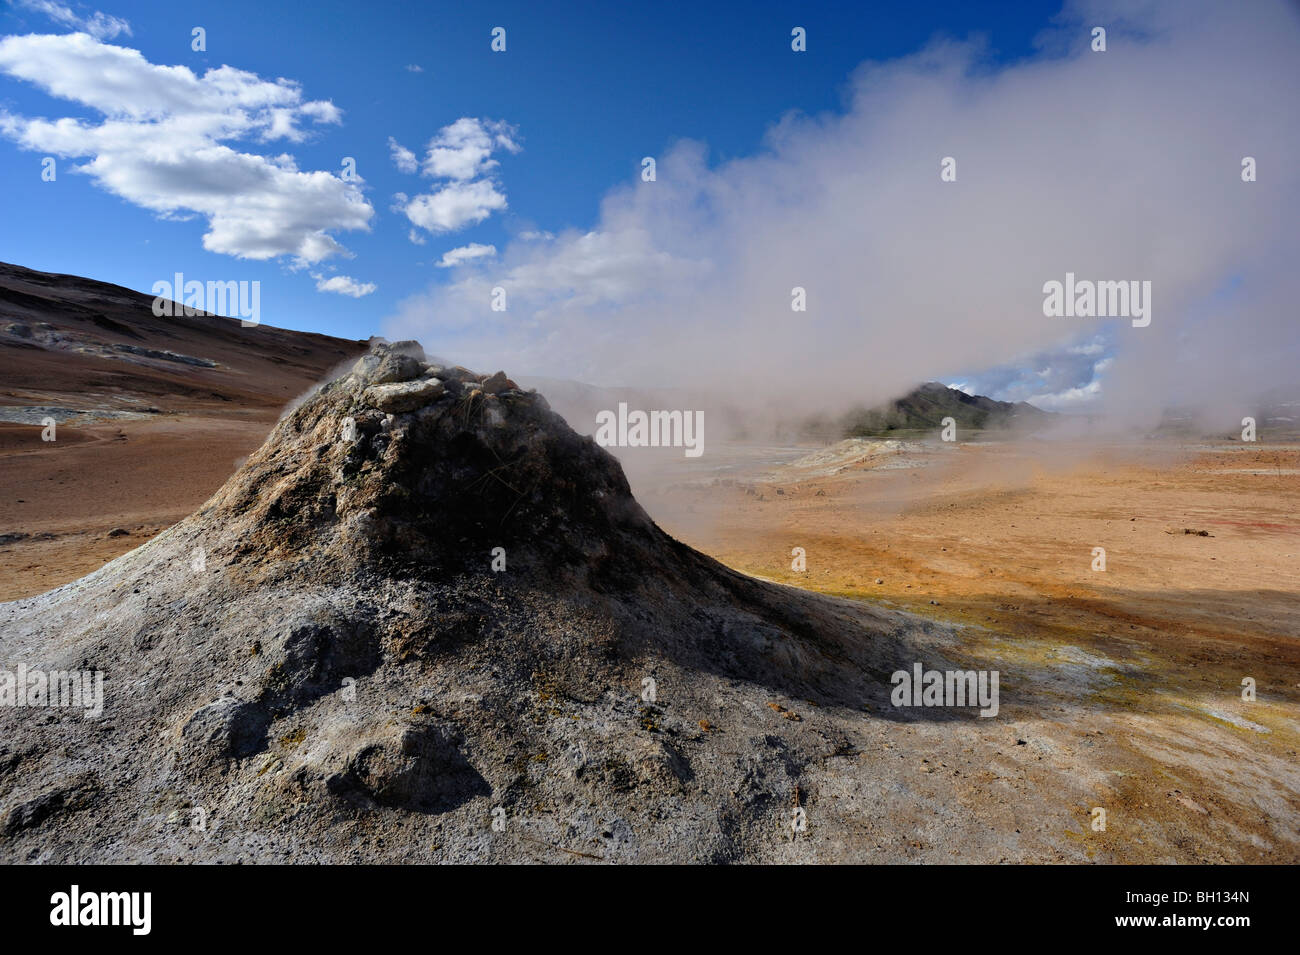 Steaming vent or fumarole under a beautiful summer sky in the geothermal area of Hverarond near Myvatn in northern - Stock Image